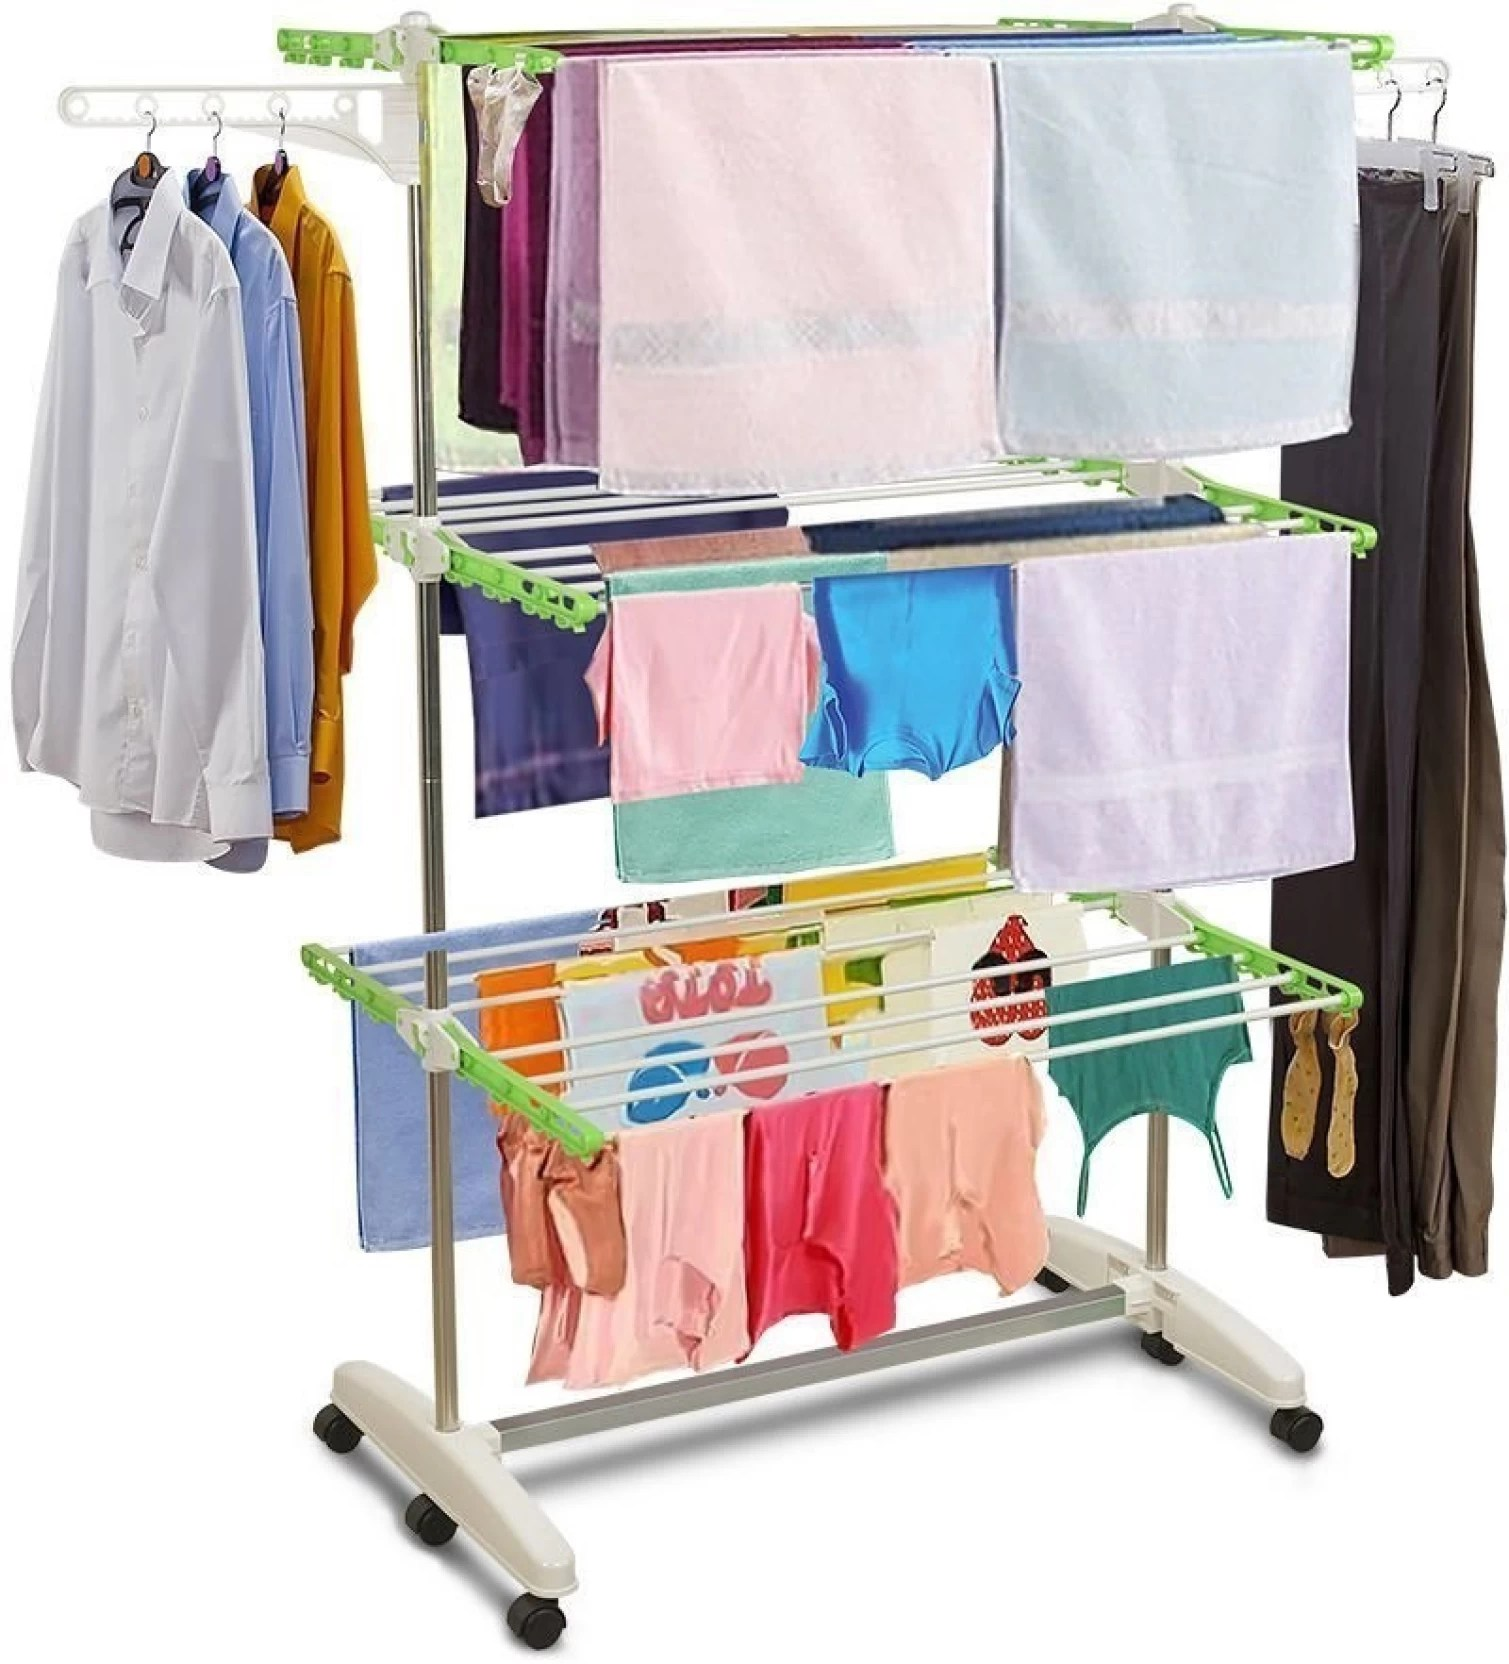 Cloth Hanger Stand Bms Lifestyle Premium Full Size Heavy Duty Folding Cloth Drying Stand Laundry Hanger Rack Stand 10 Washing Zipper Bag Free Stainless Steel